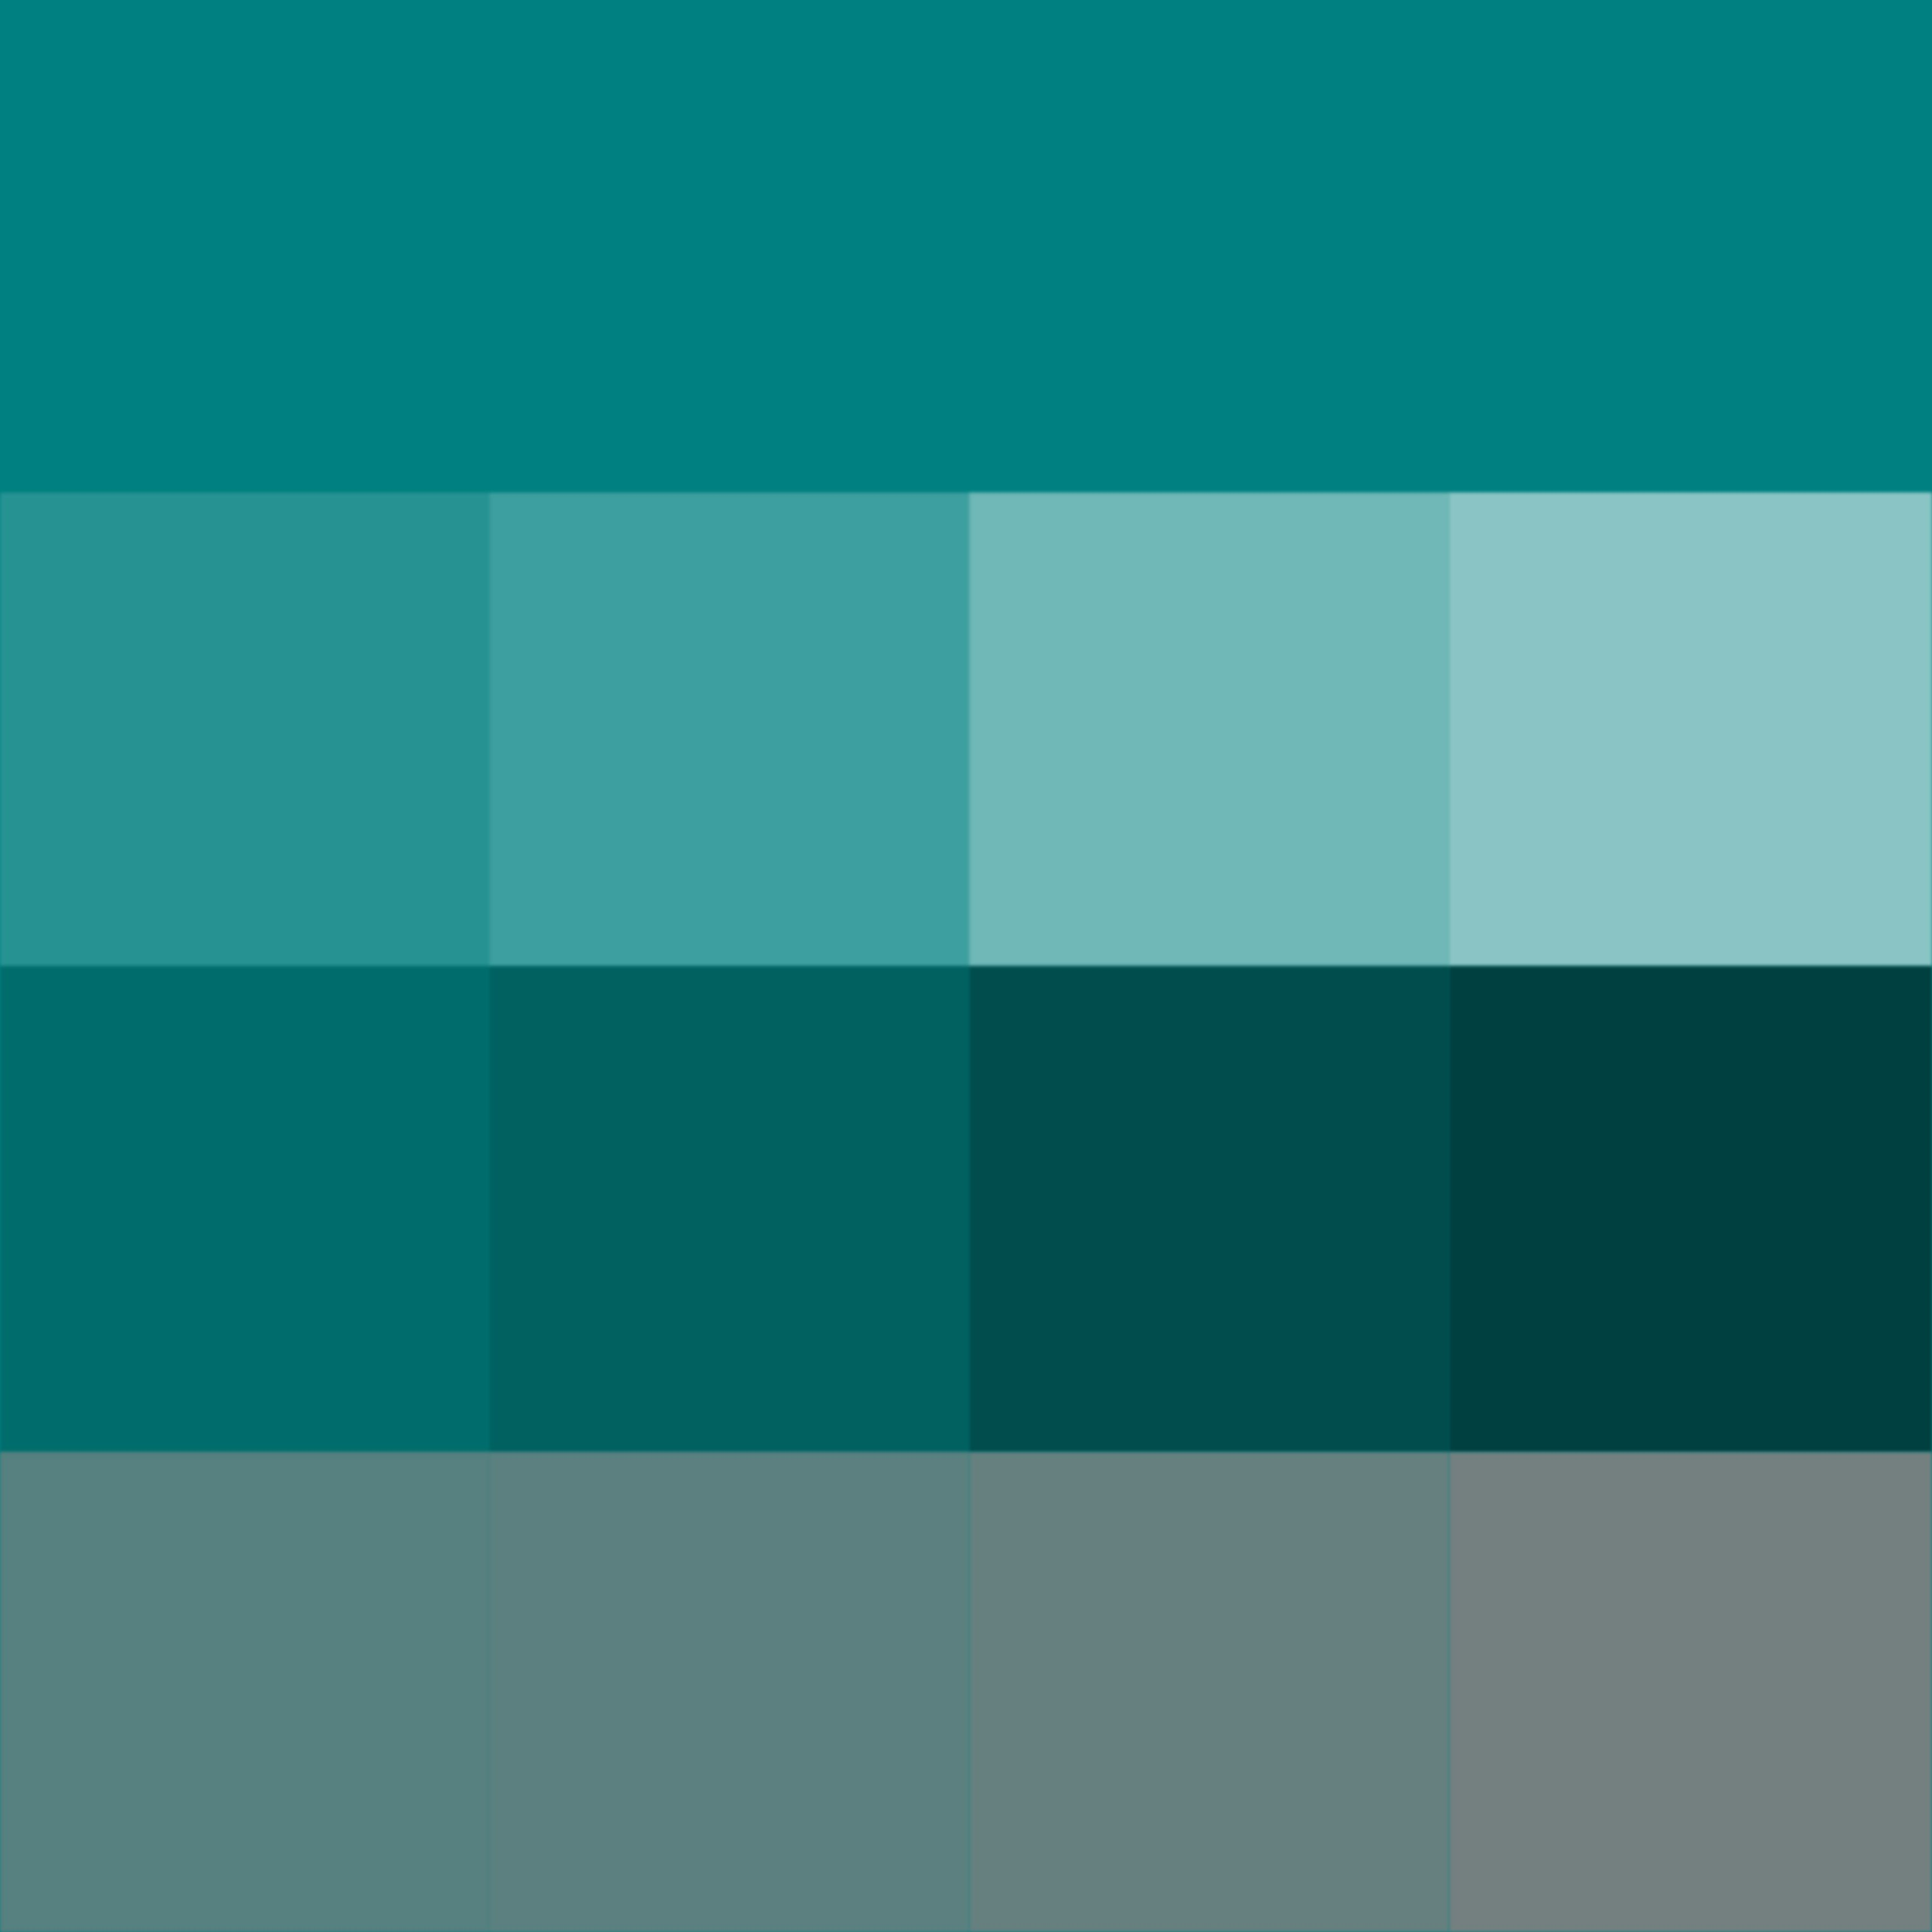 Pin by color wheel on teal pinterest What color is teal